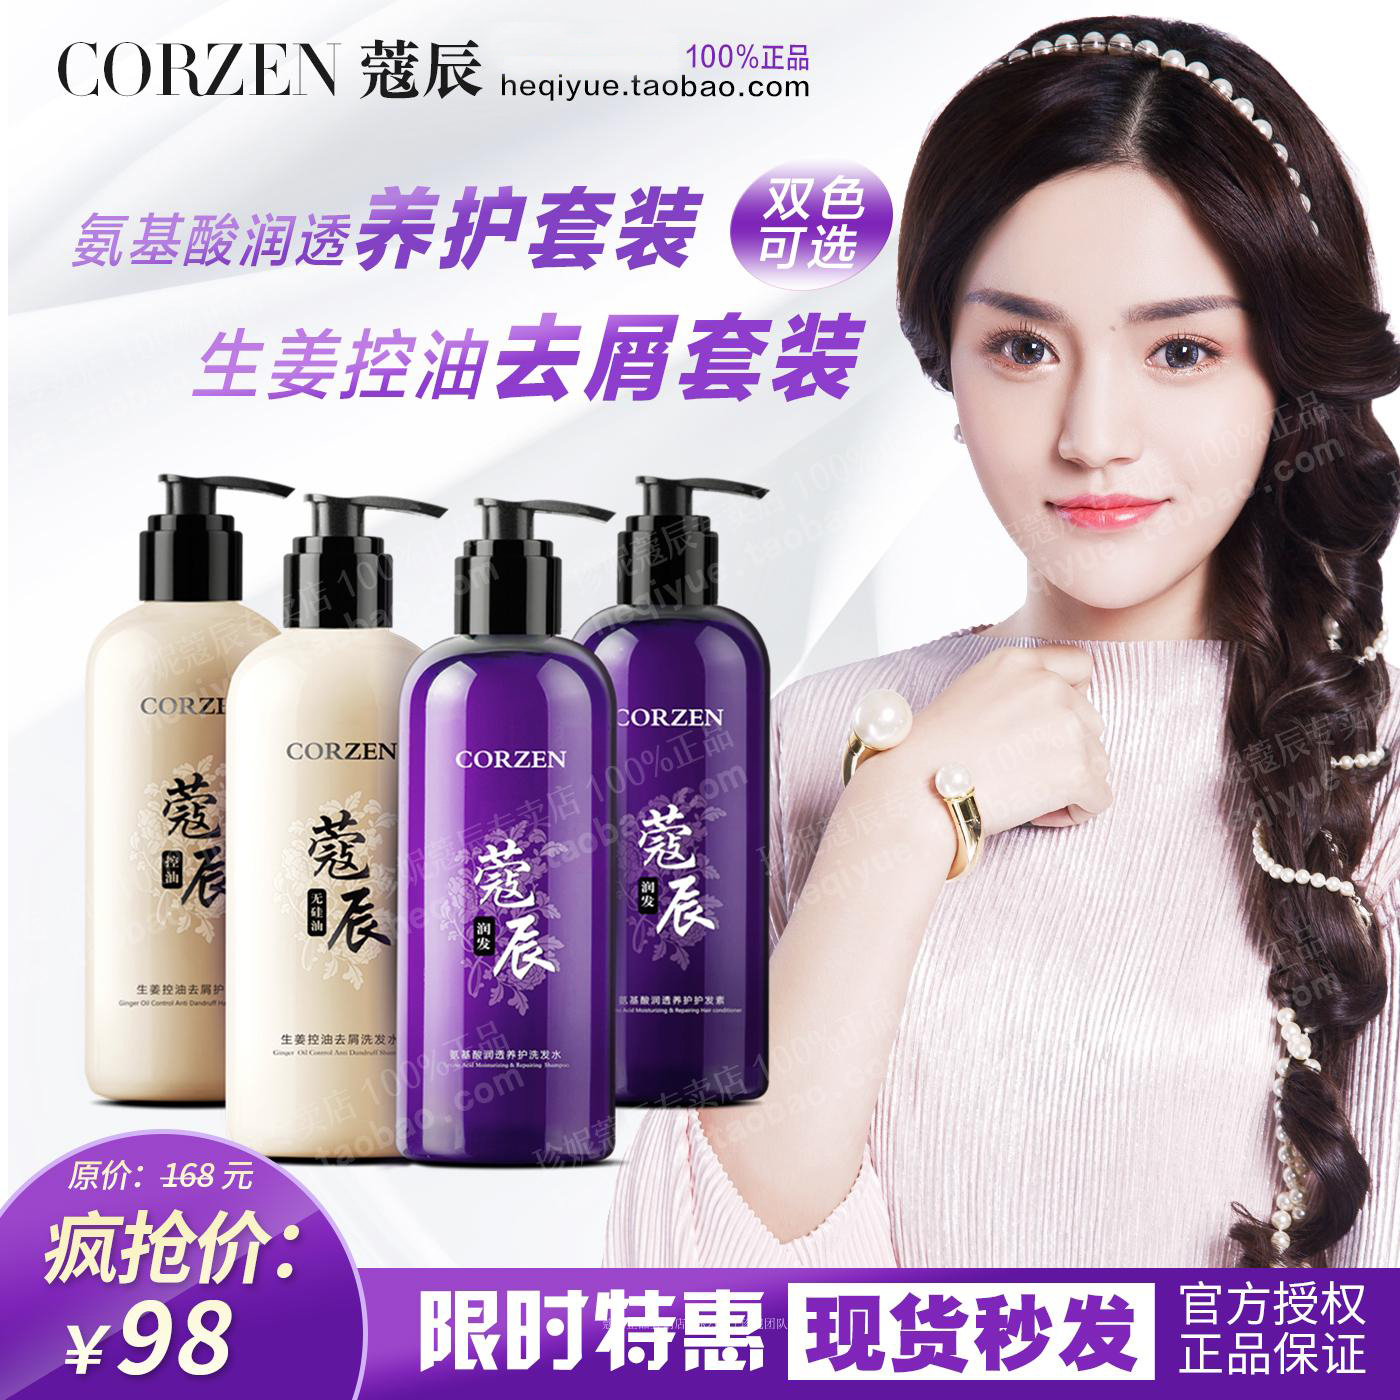 Kongchen Shampoo & conditioner, shampoo & moisturizer, kongchen Makeup & Shampoo, shampoo & conditioner, soften hair